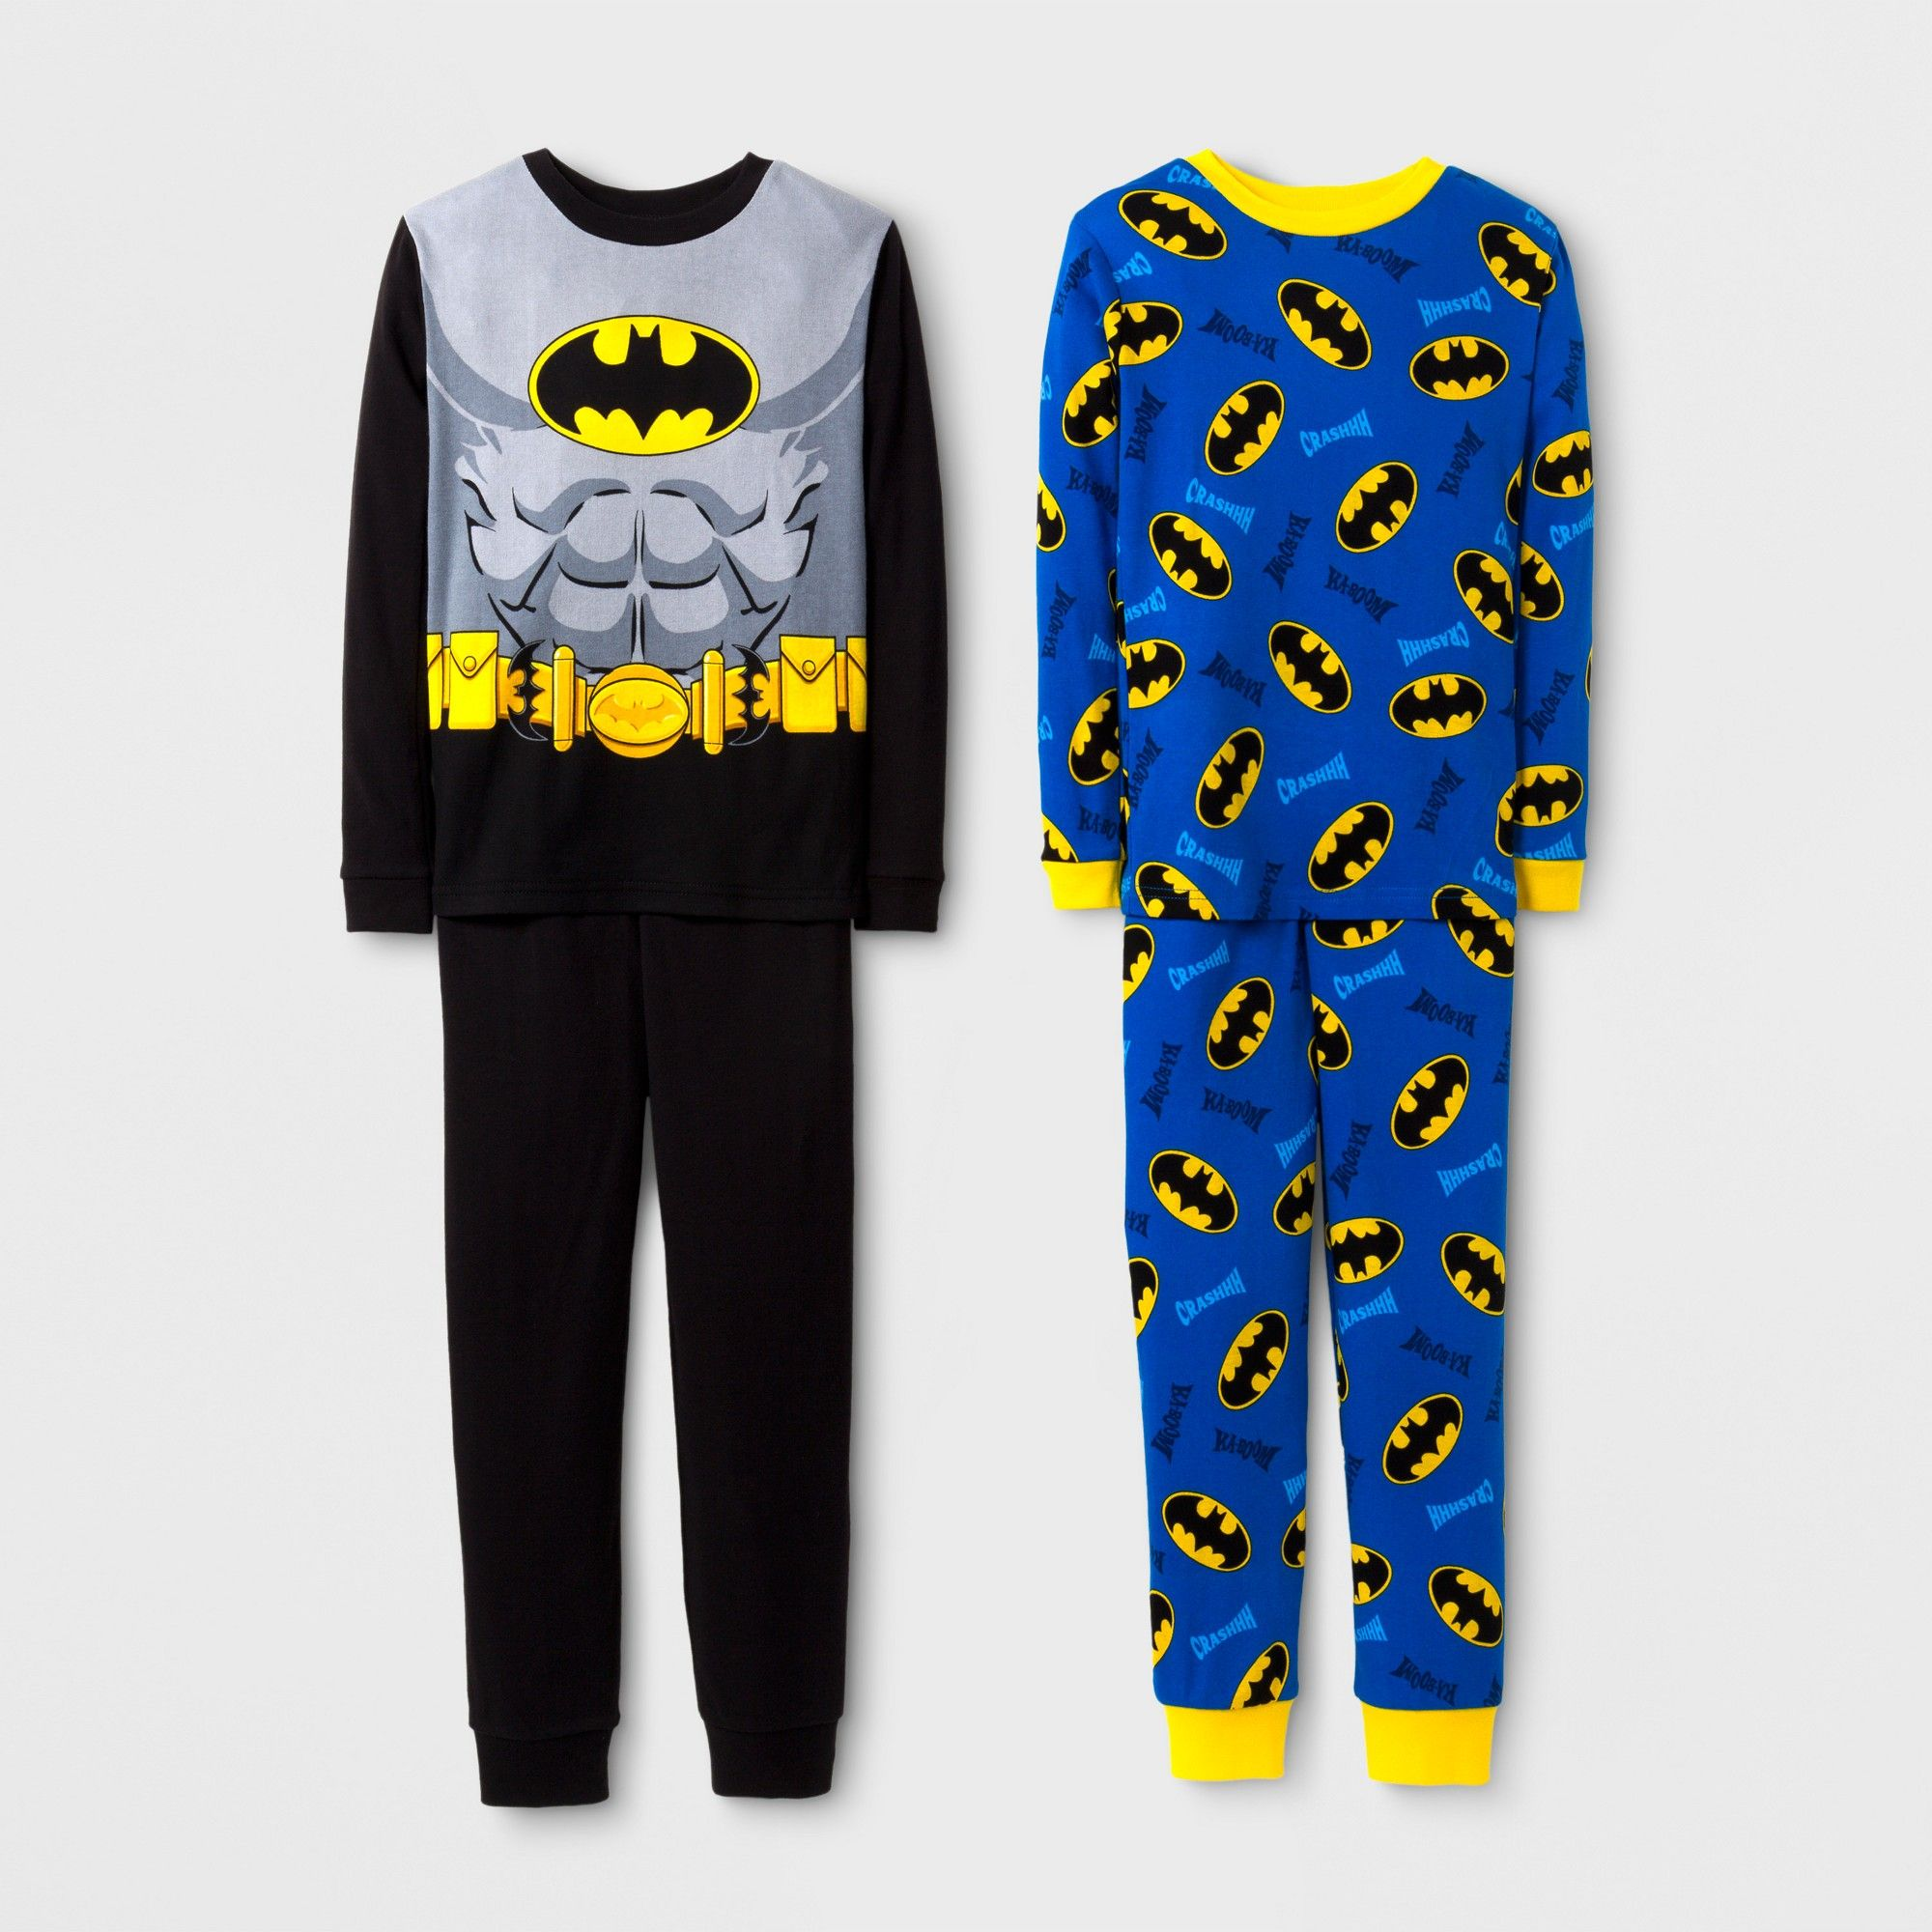 cfb563d660fb Boys  DC Comics Batman 4 Piece Cotton Pajama Set - Black 8 ...